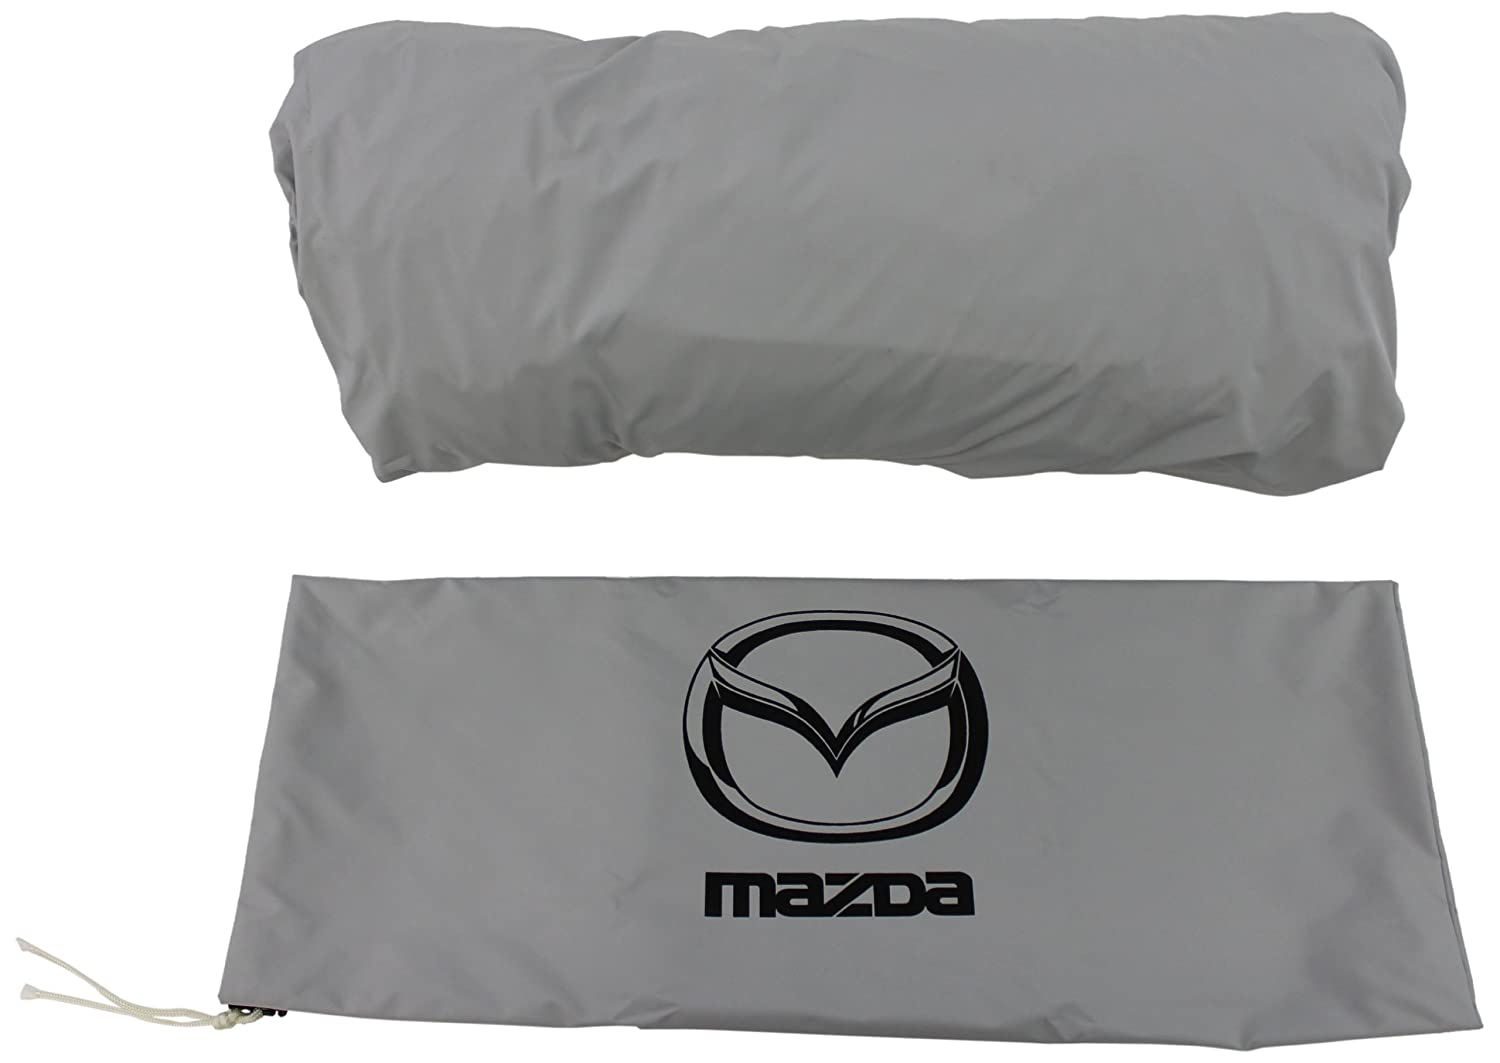 Mazda Genuine Accessories 0000-8J-L11 Car Cover